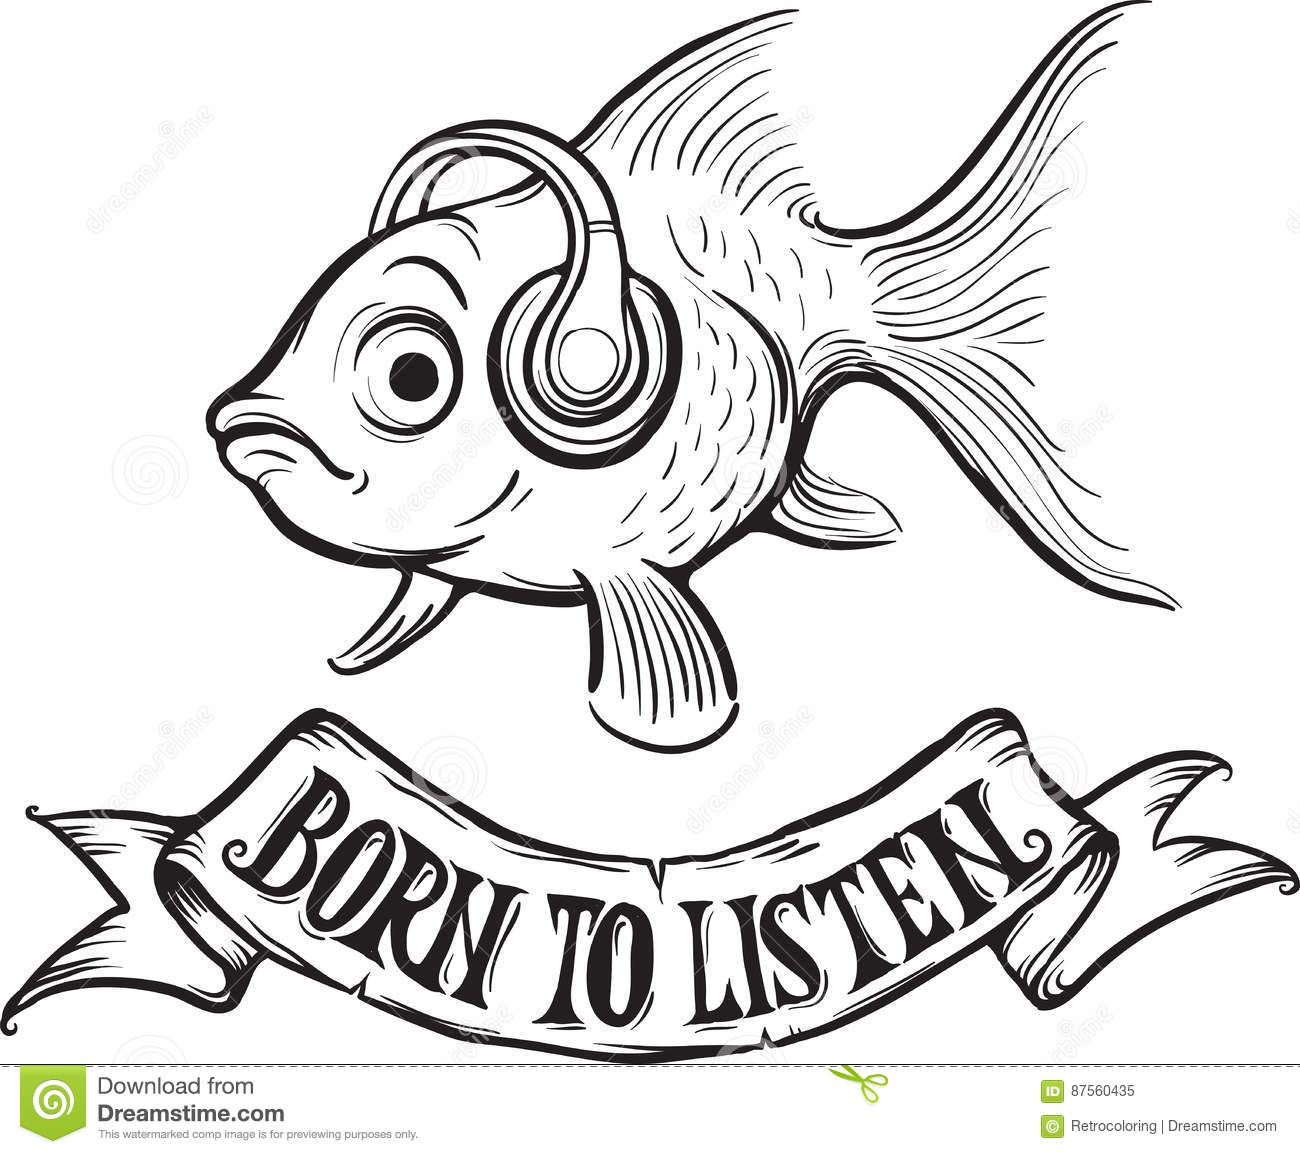 whiteboard drawing - born to listen goldfish stock vector